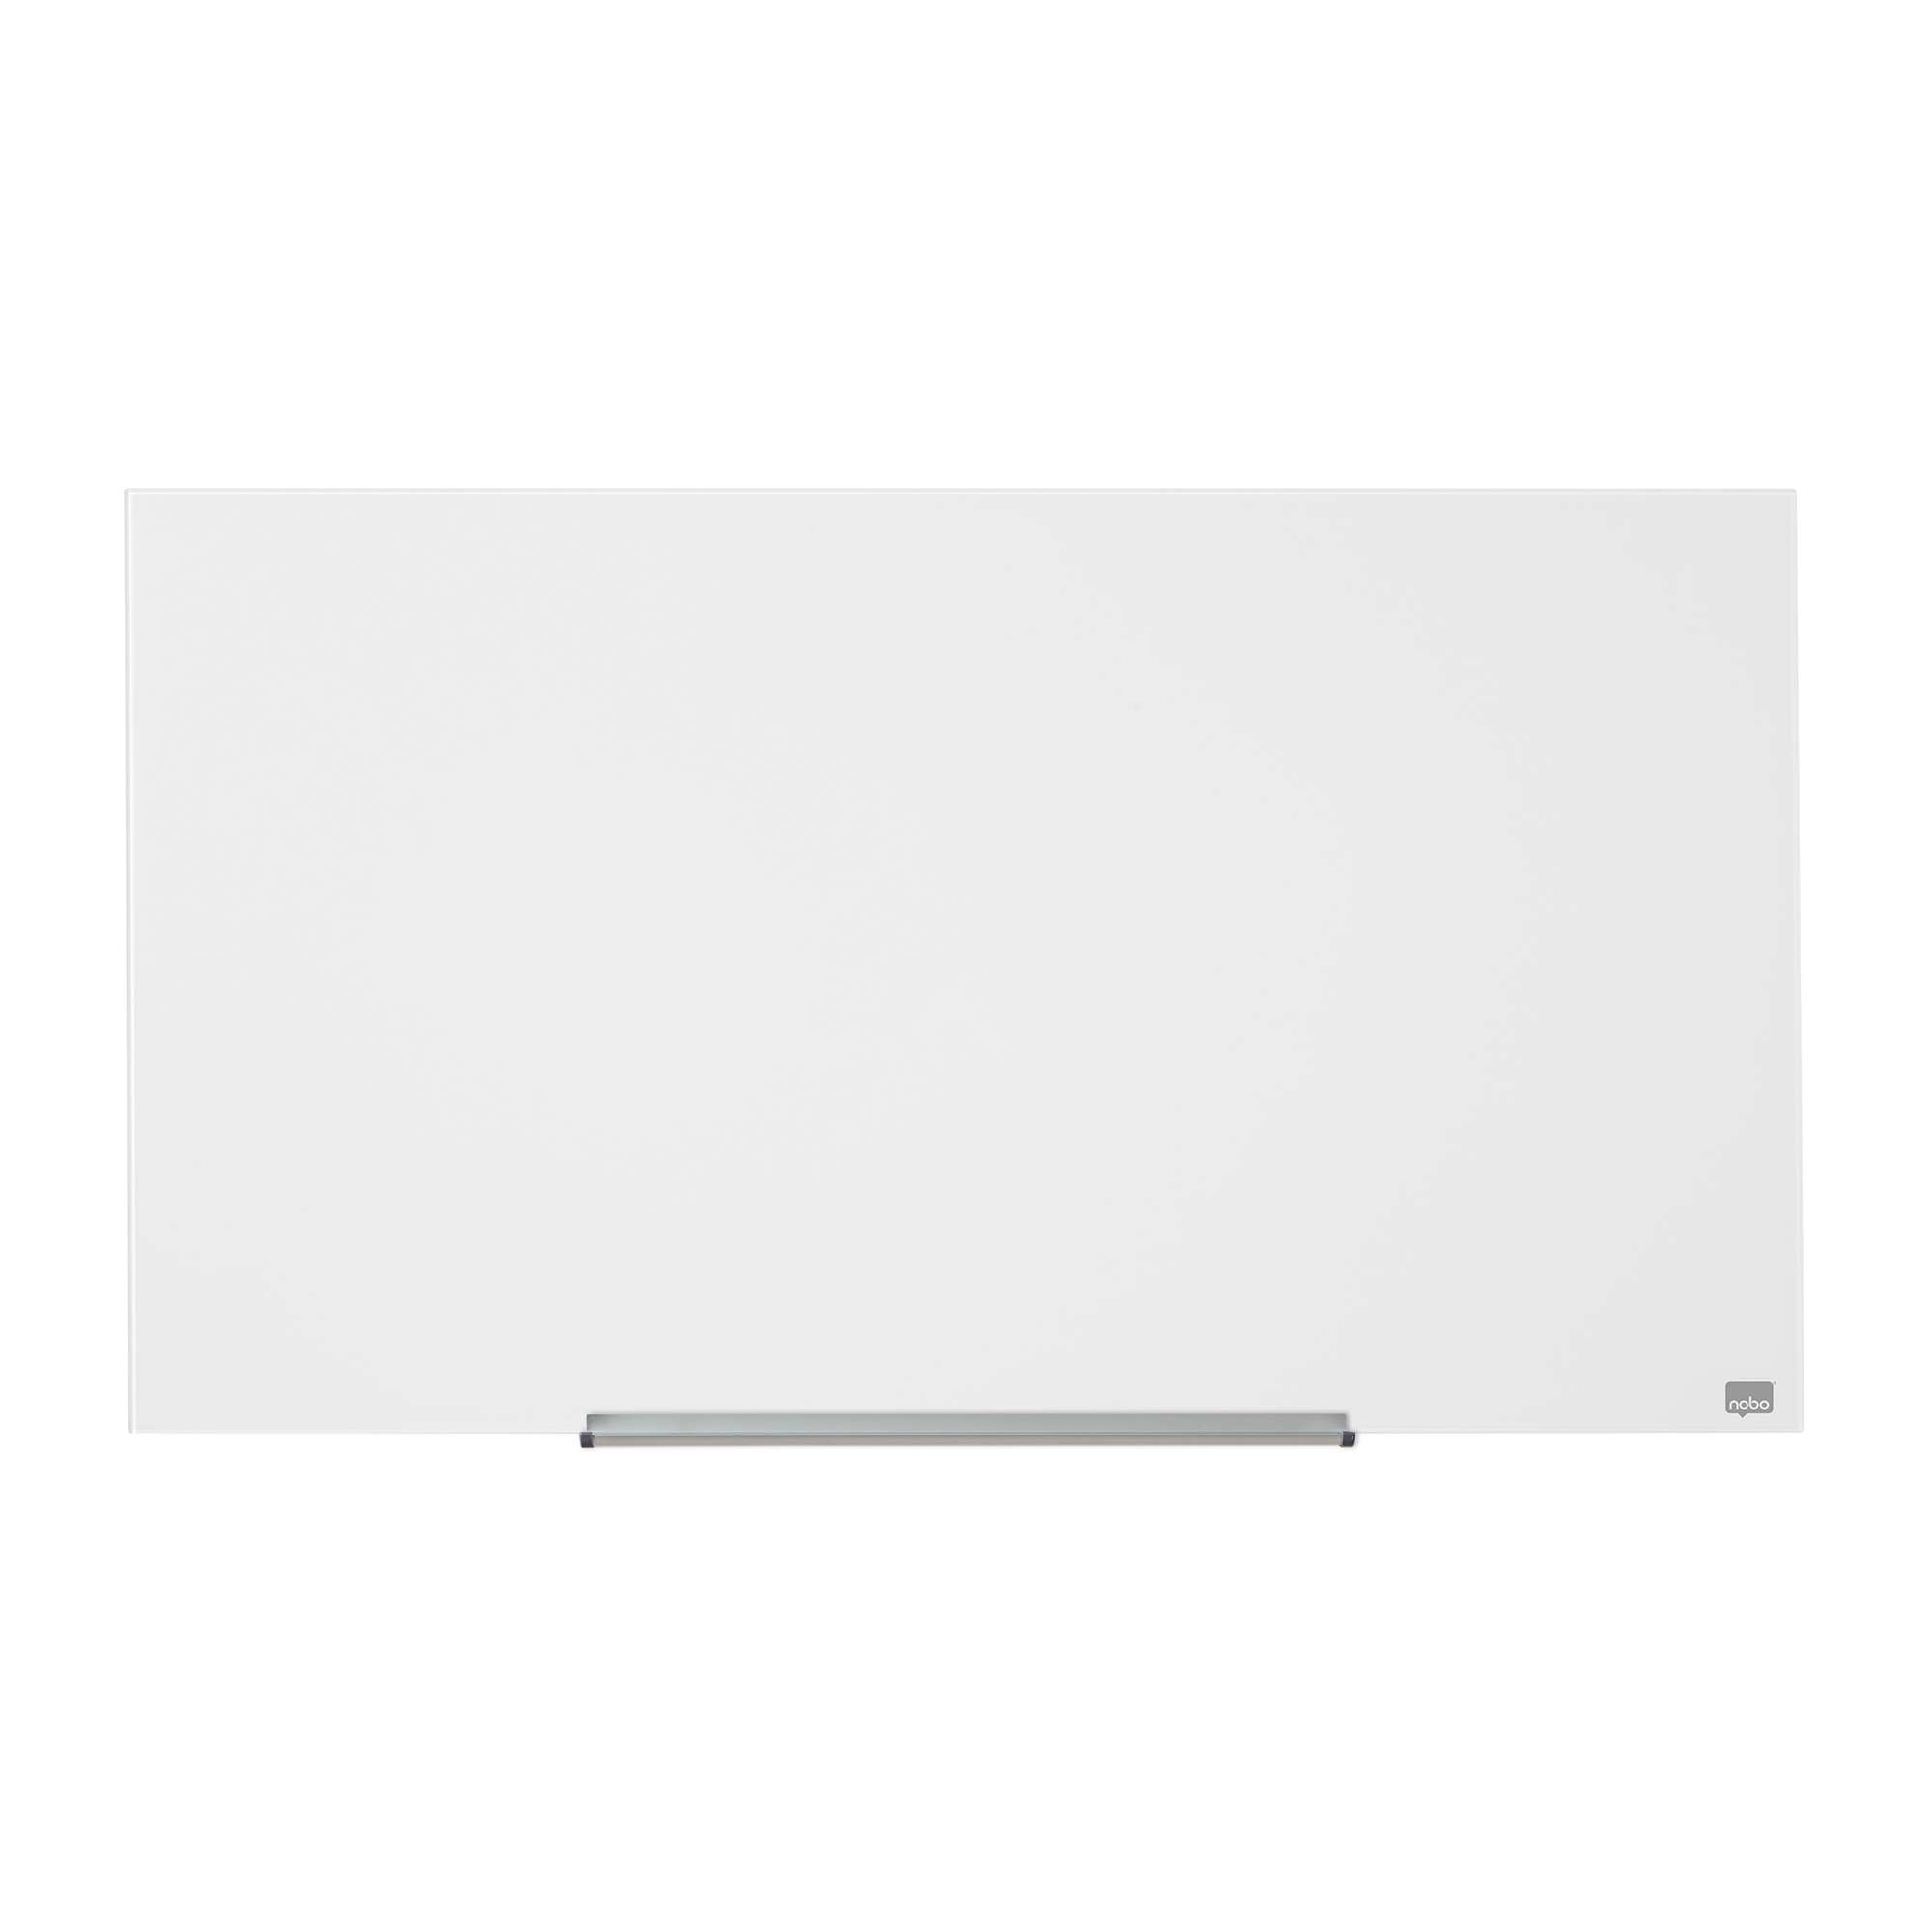 Nobo Widescreen 57 inch WBrd Glass Magnetic Scratch-Resistant Fixings Inc W1264xH711mm Wht Ref 1905177